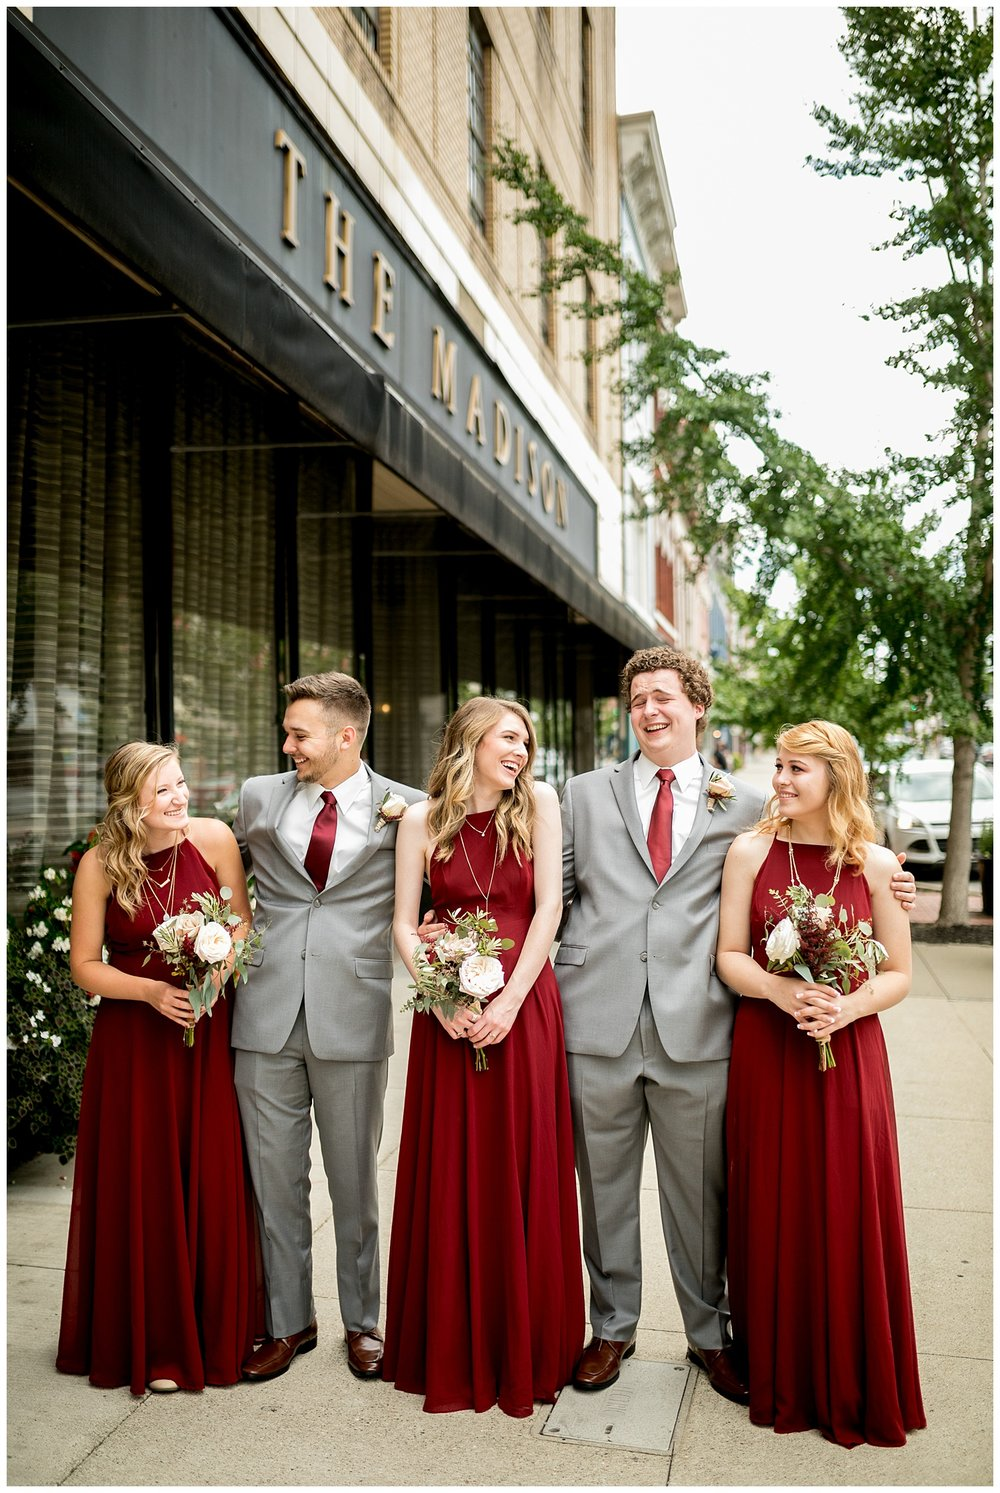 TheSmythCollective-Best-Cincinnati-Wedding-Photographer-Urban-Downtown-Covington-Wedding-10.jpg